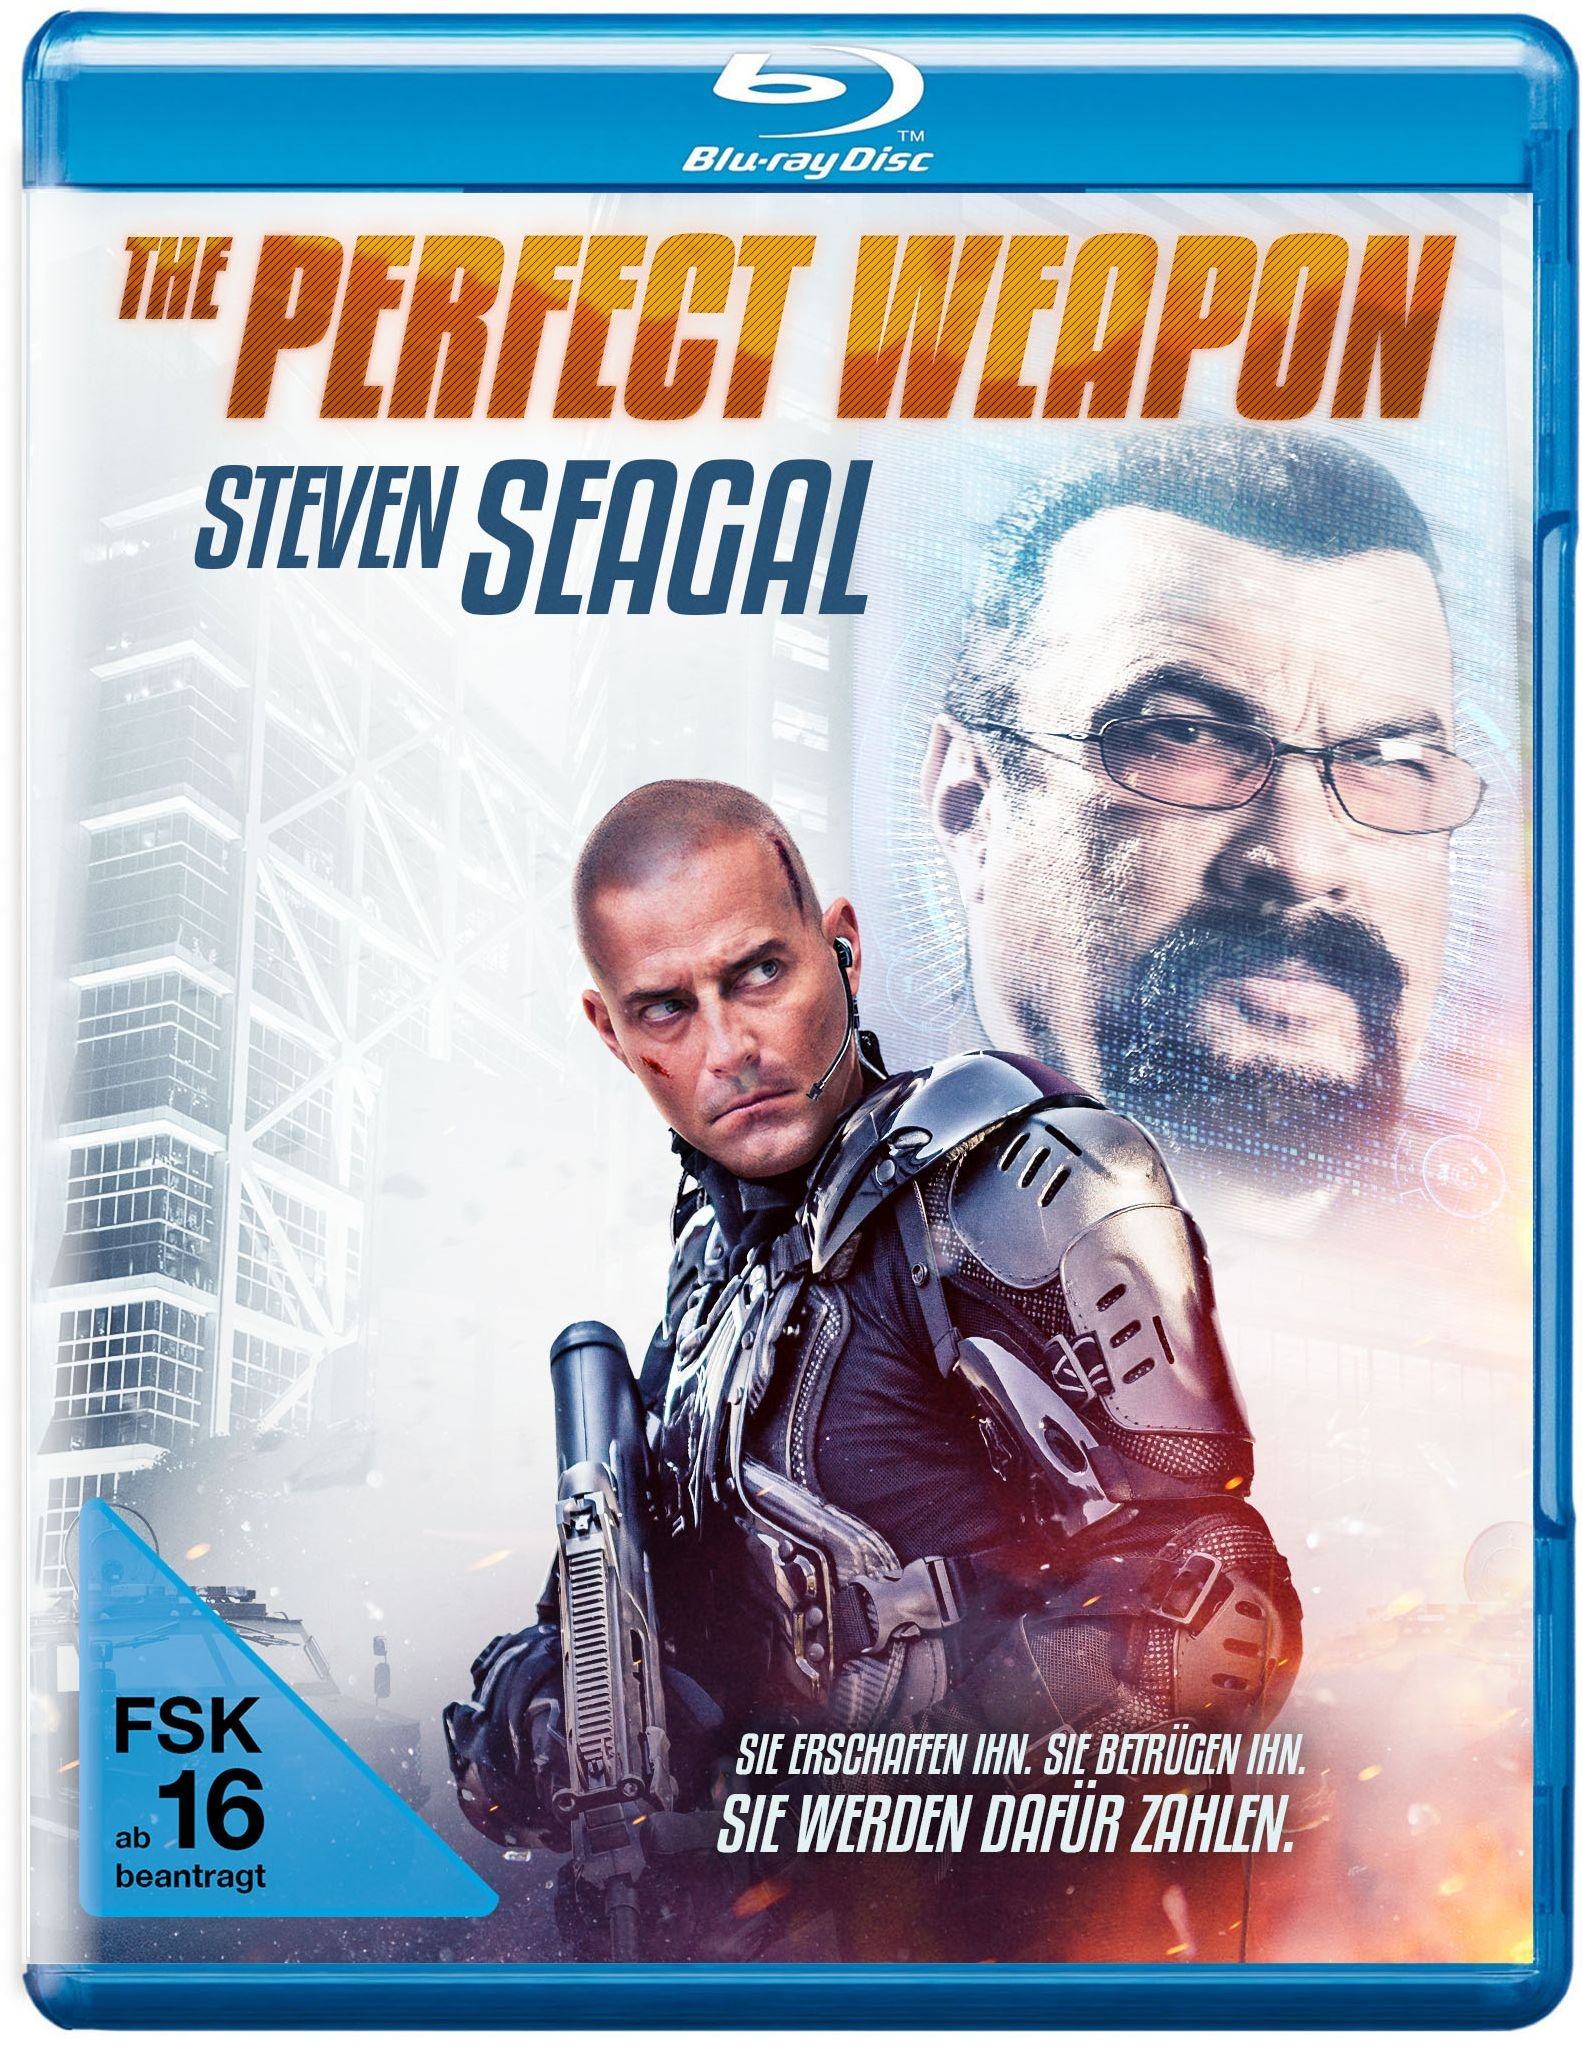 The.Perfect.Weapon 2016.German.BDRip.AC3.5.1.DUBBED.XViD-CiNEDOME